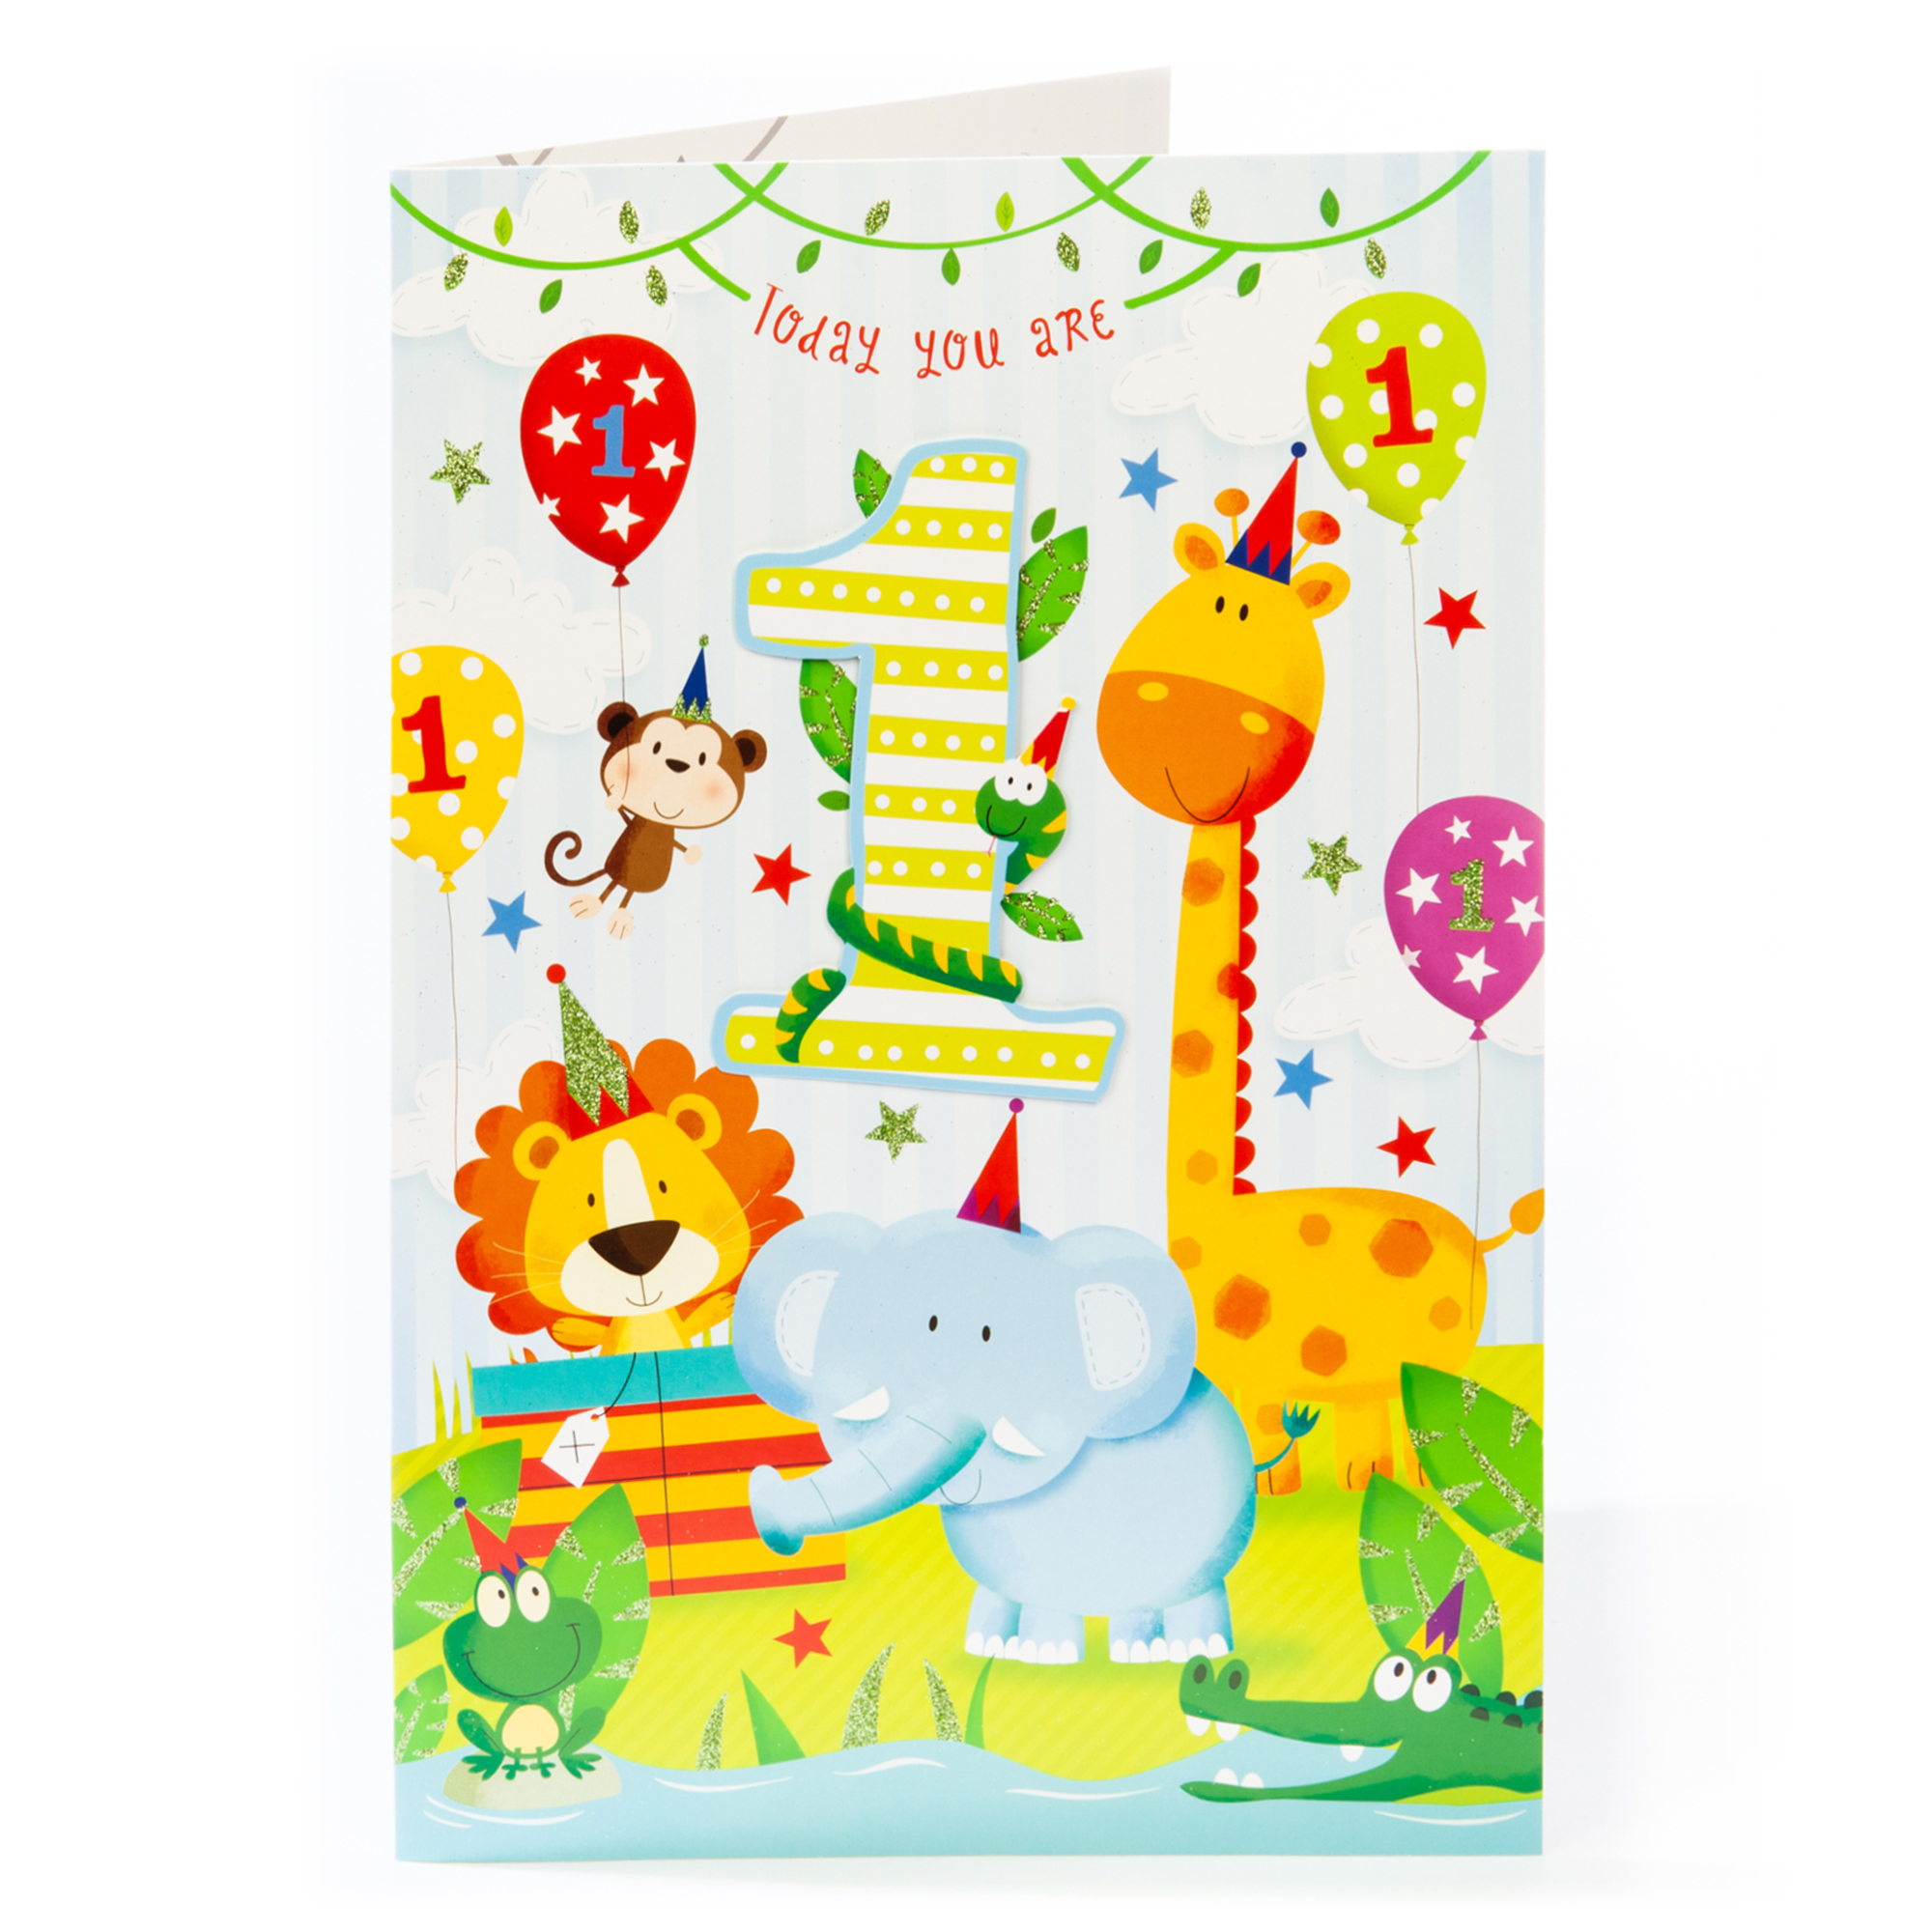 Giant 1st Birthday Card - Jungle Animals